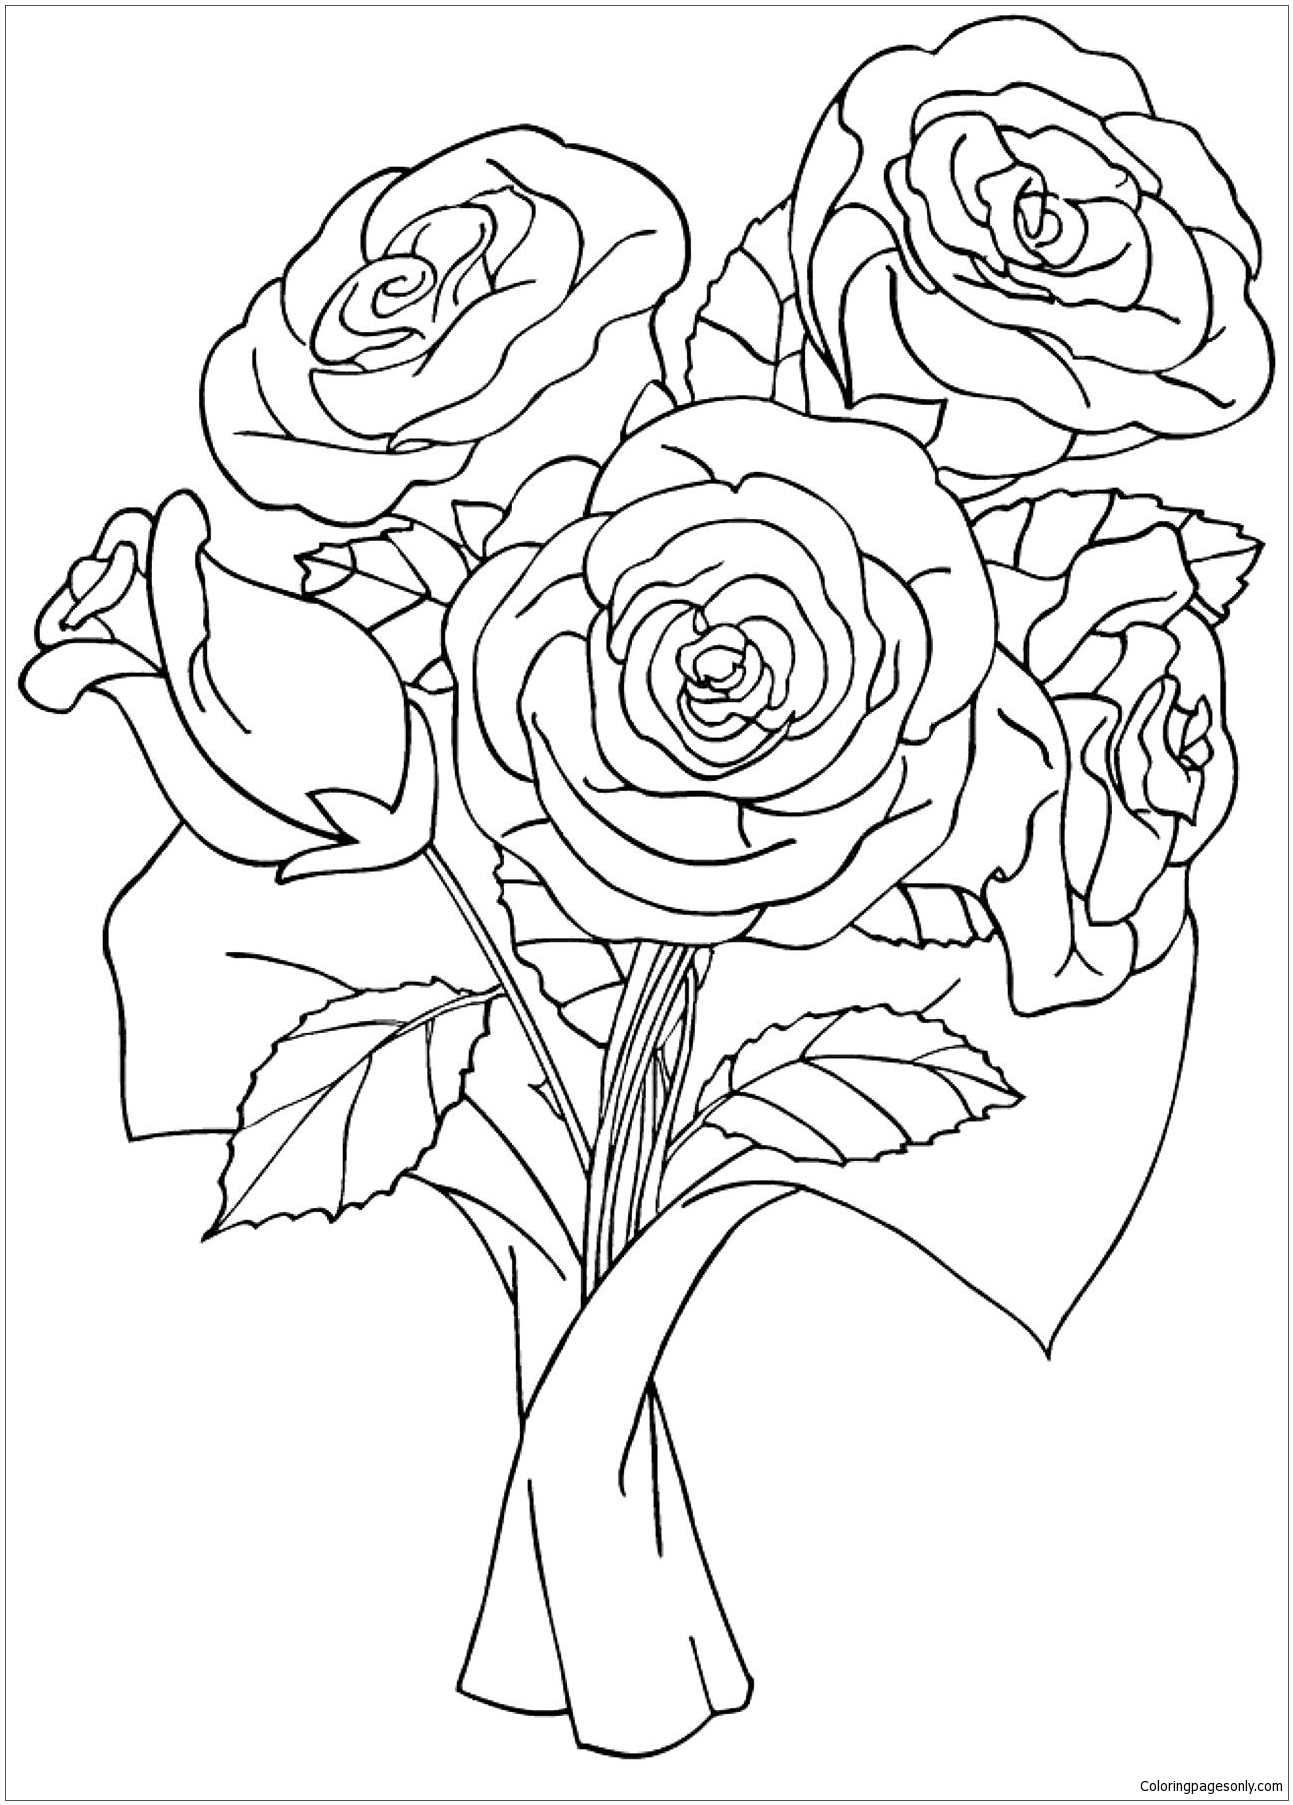 roses coloring download rose bush coloring for free designlooter 2020 coloring roses